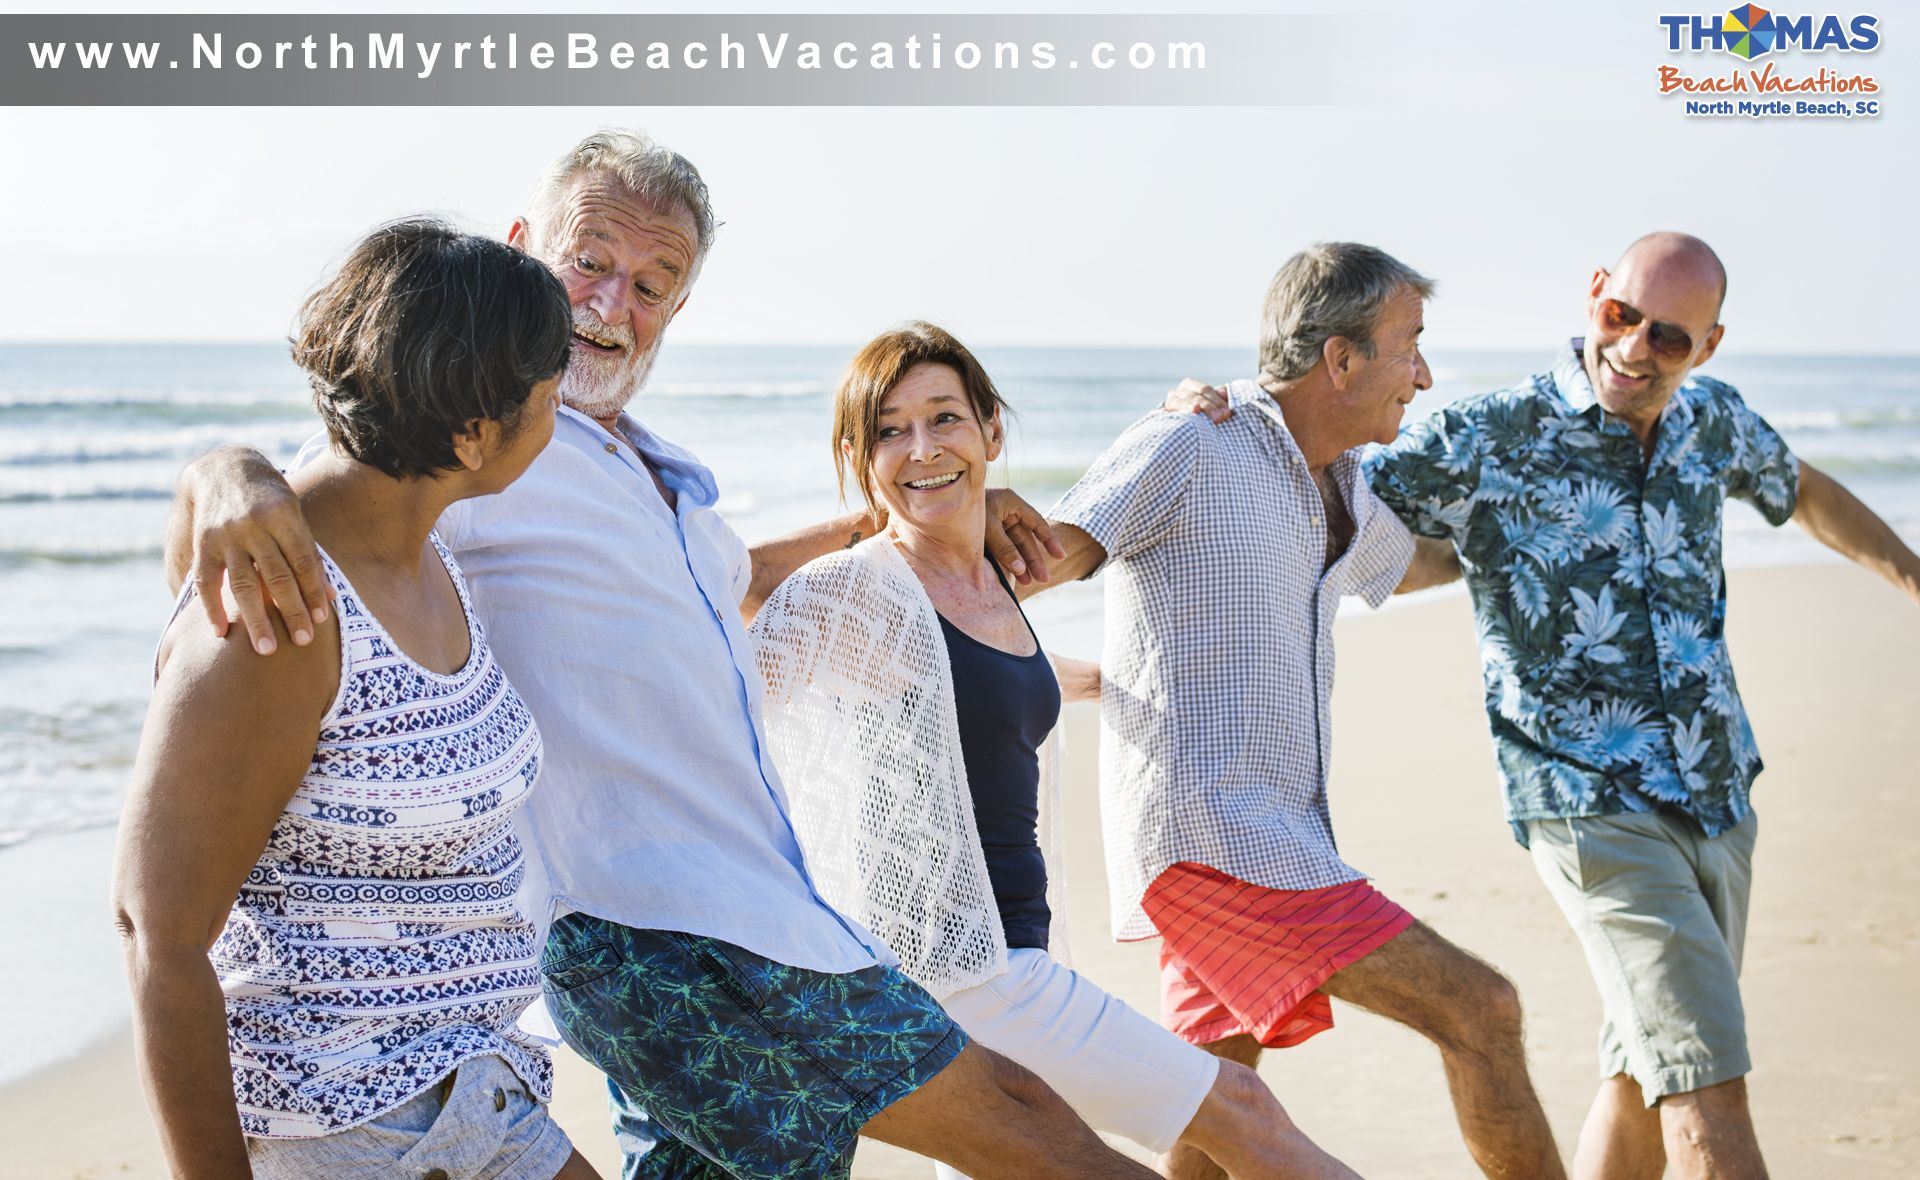 Sometimes Sand Water Sunshine And Good Company Are All You Really Need Myrtle Beach Vacation Rentals North Myrtle Beach North Myrtle Beach Vacation Rentals